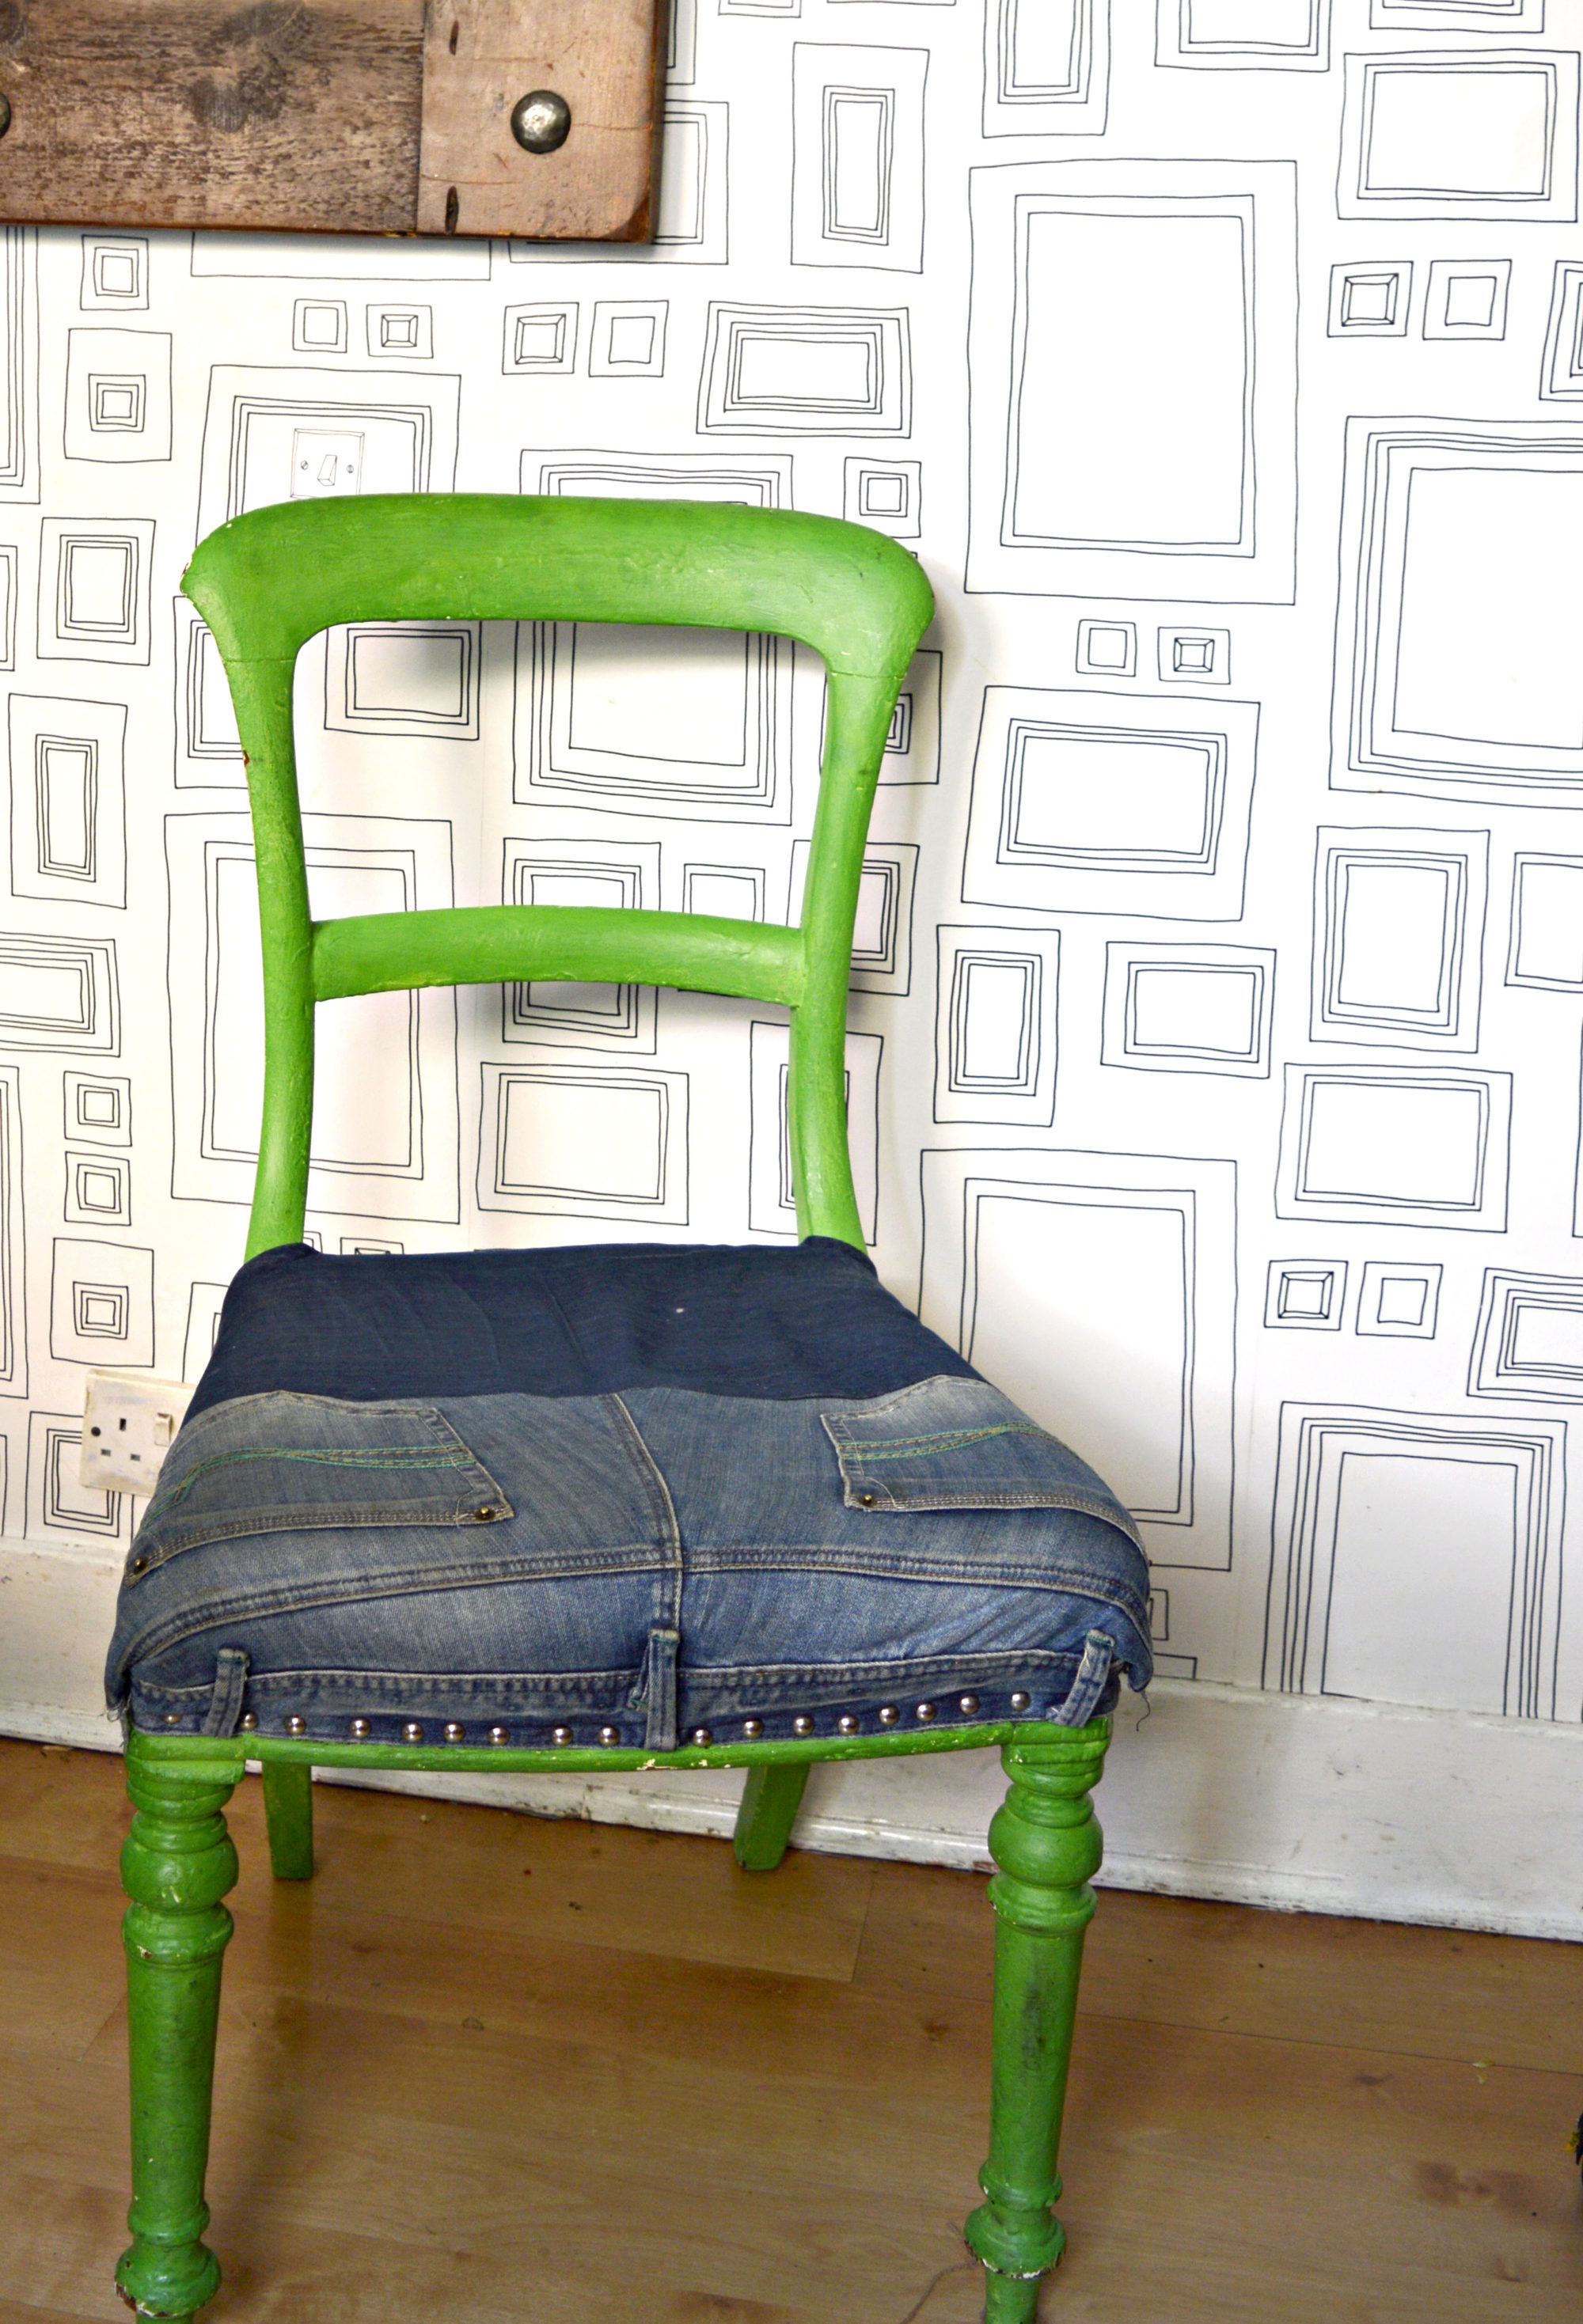 Upholster chairs in denim by upcycling old jeans.  Step by step tutorial